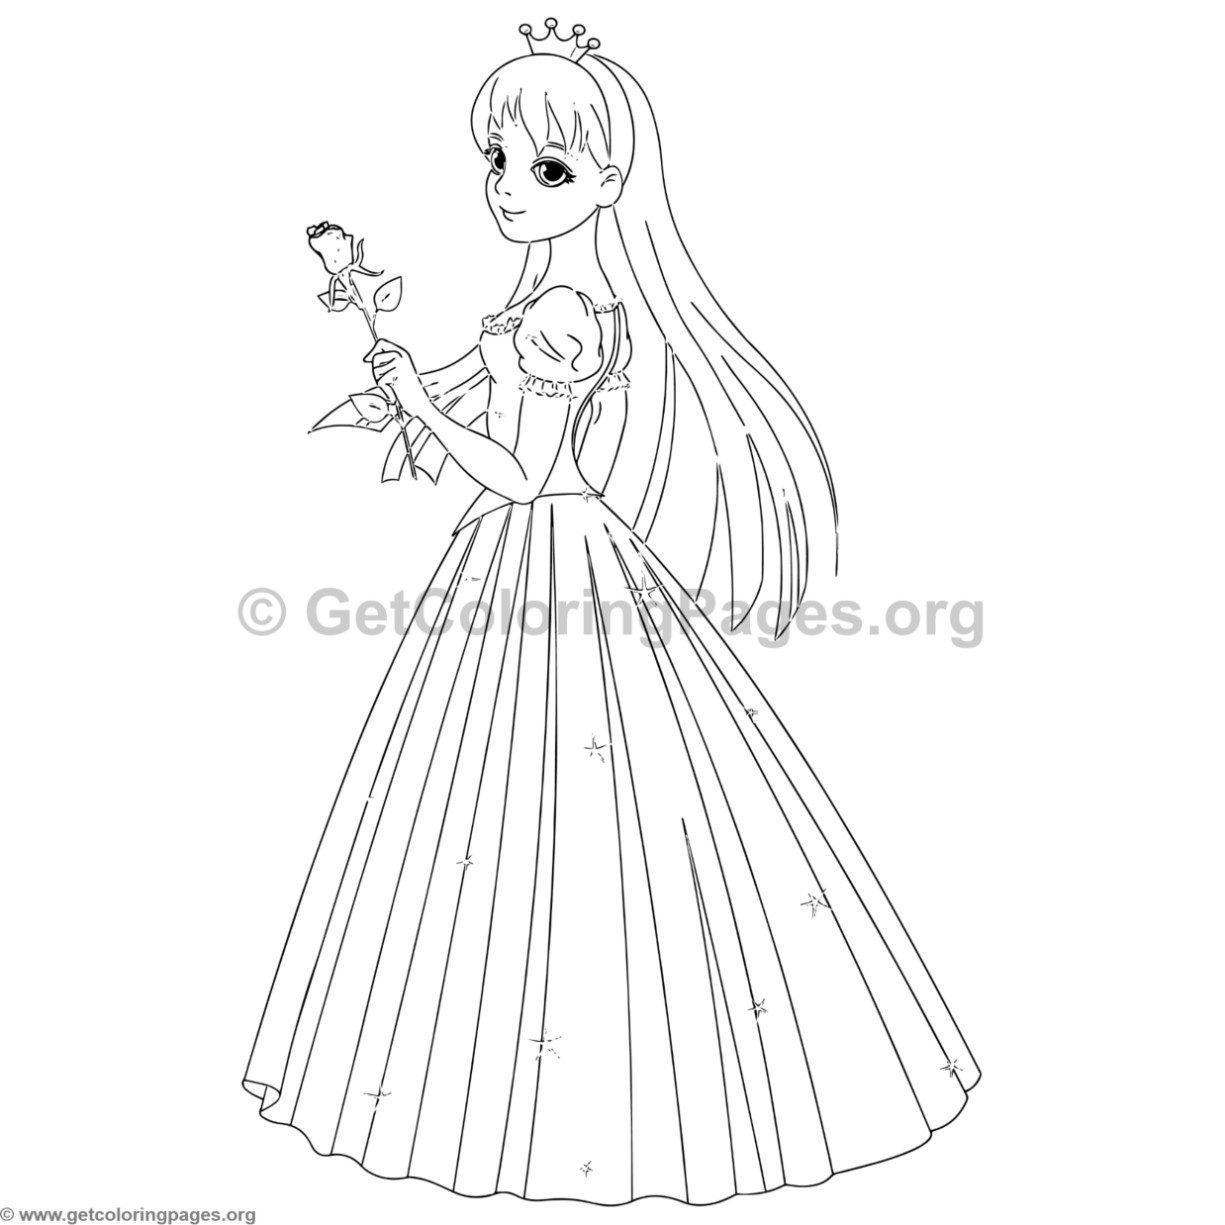 princess coloring pages 2 u2013 getcoloringpages org